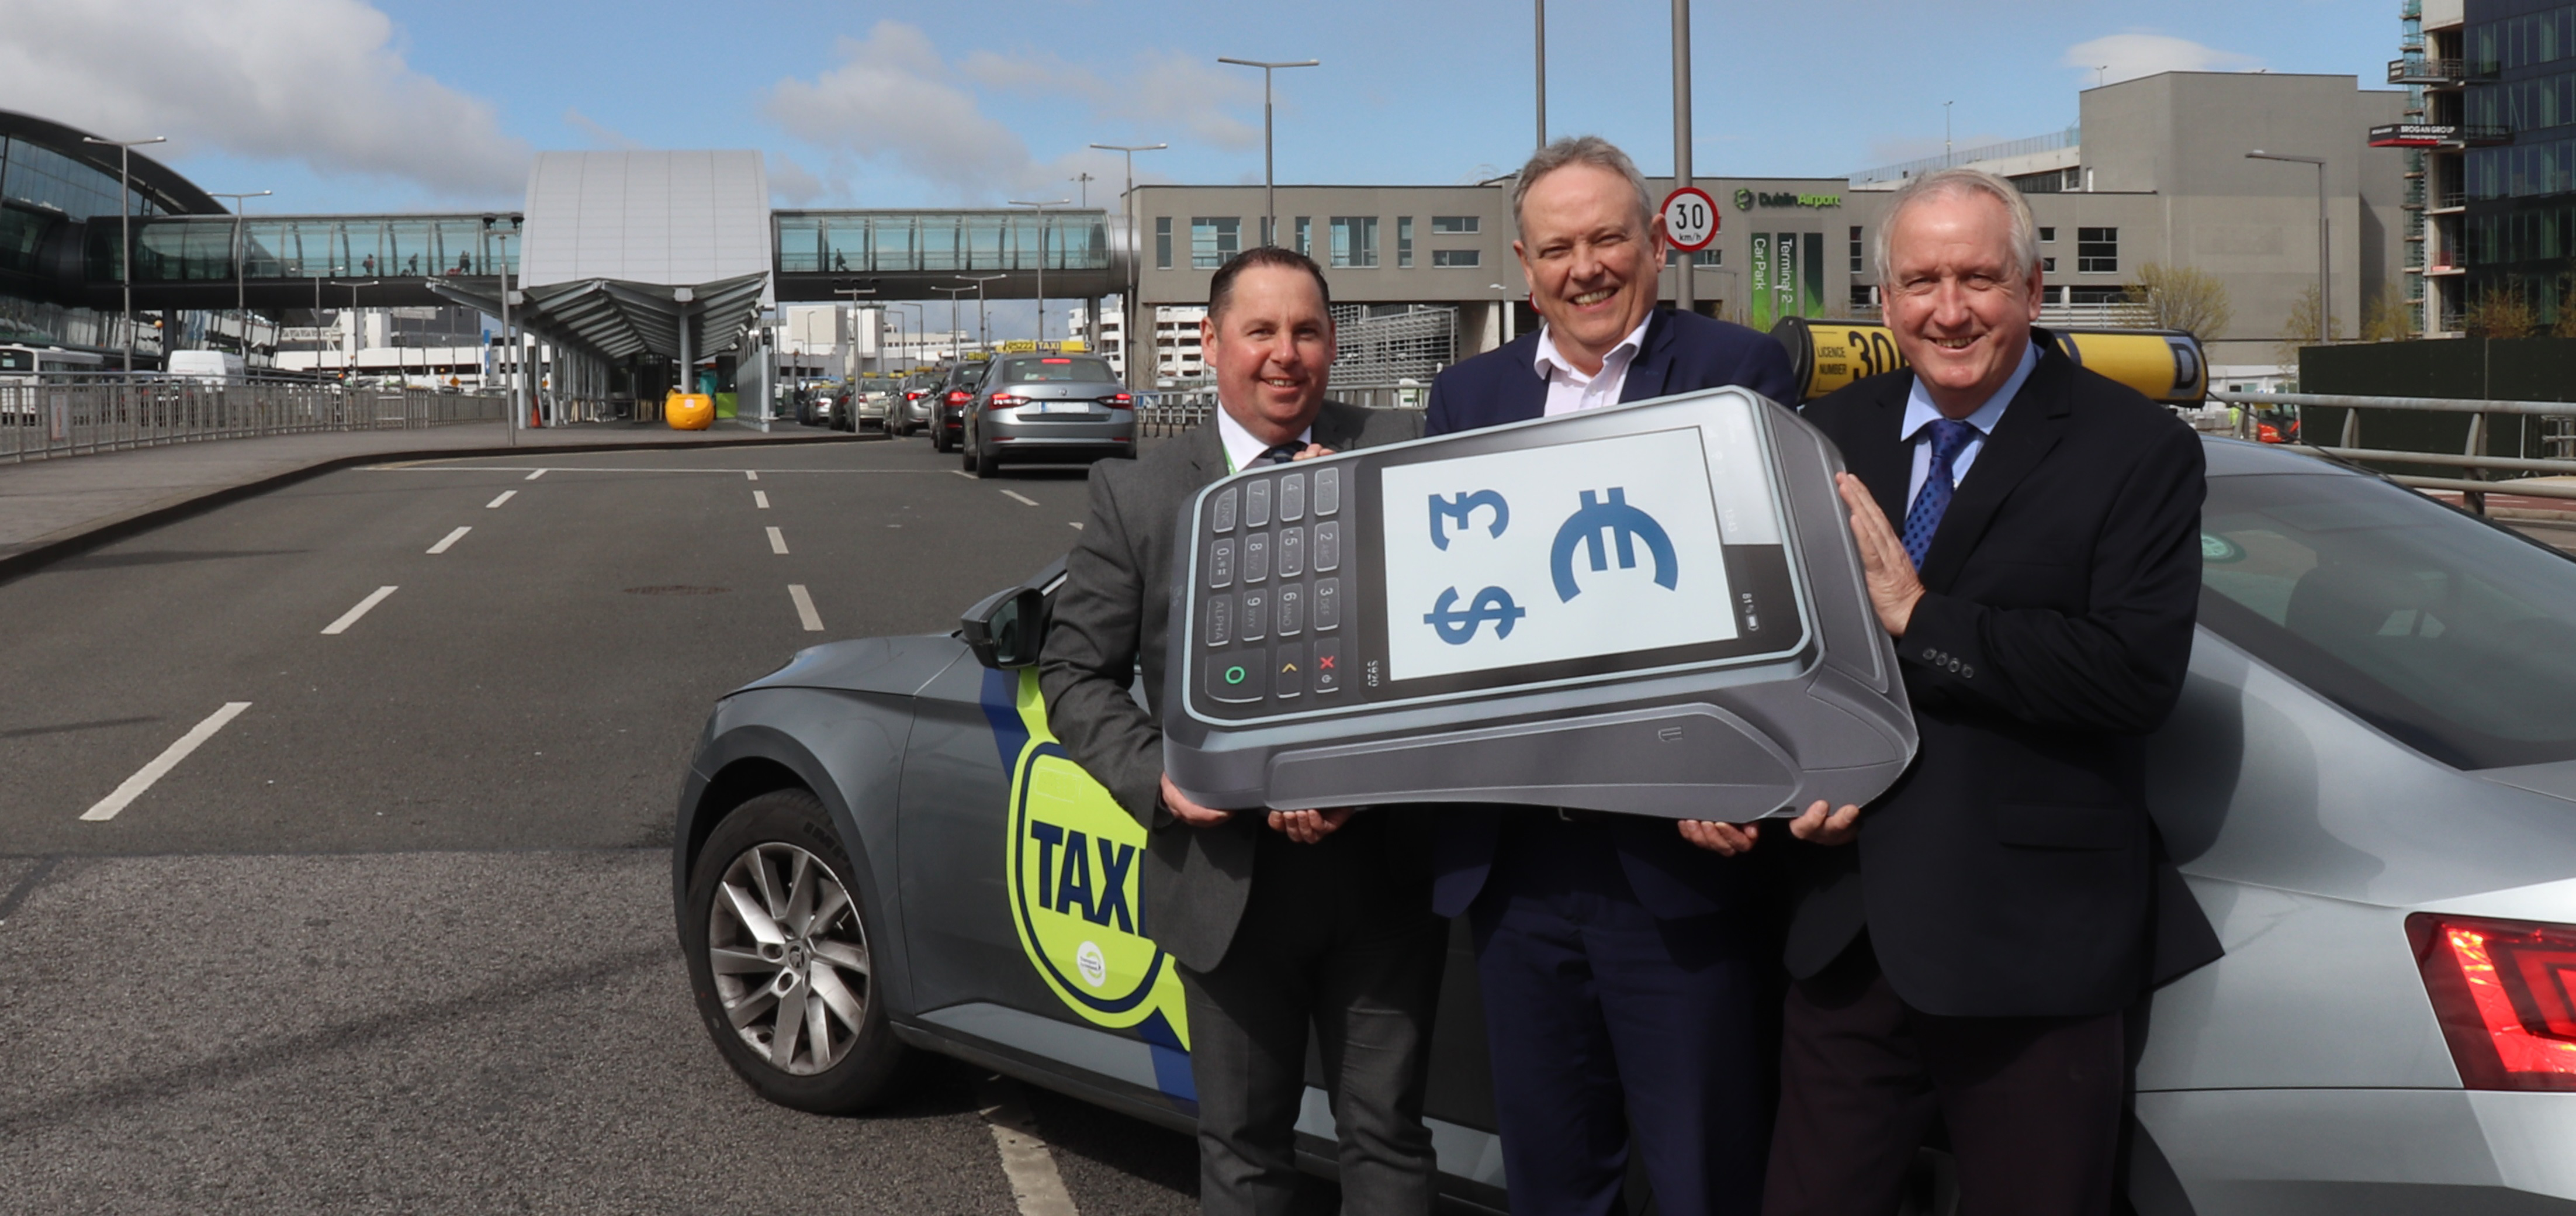 Dublin Airport taxis get cashless payment terminals from eComm